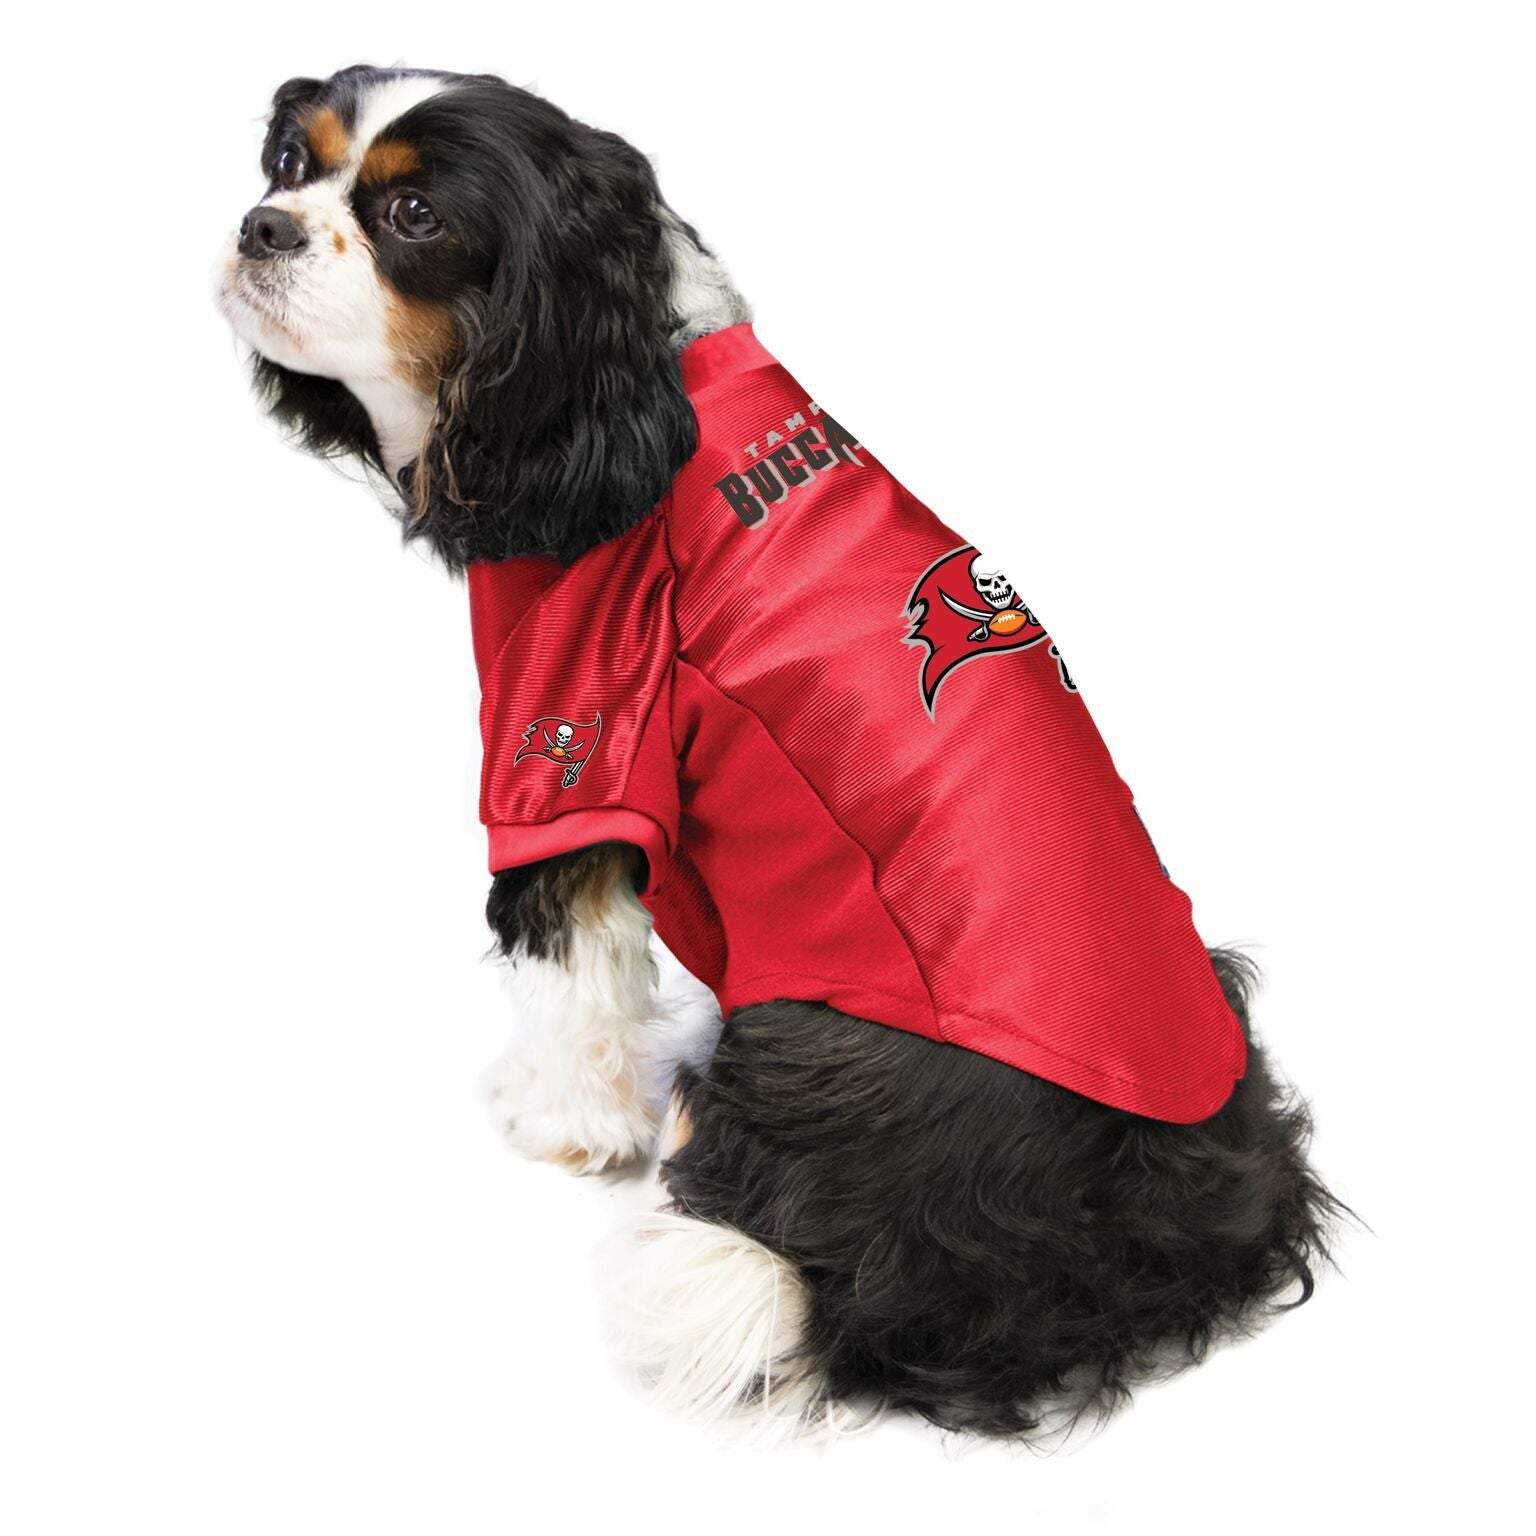 Buccaneers Outfit For Dogs